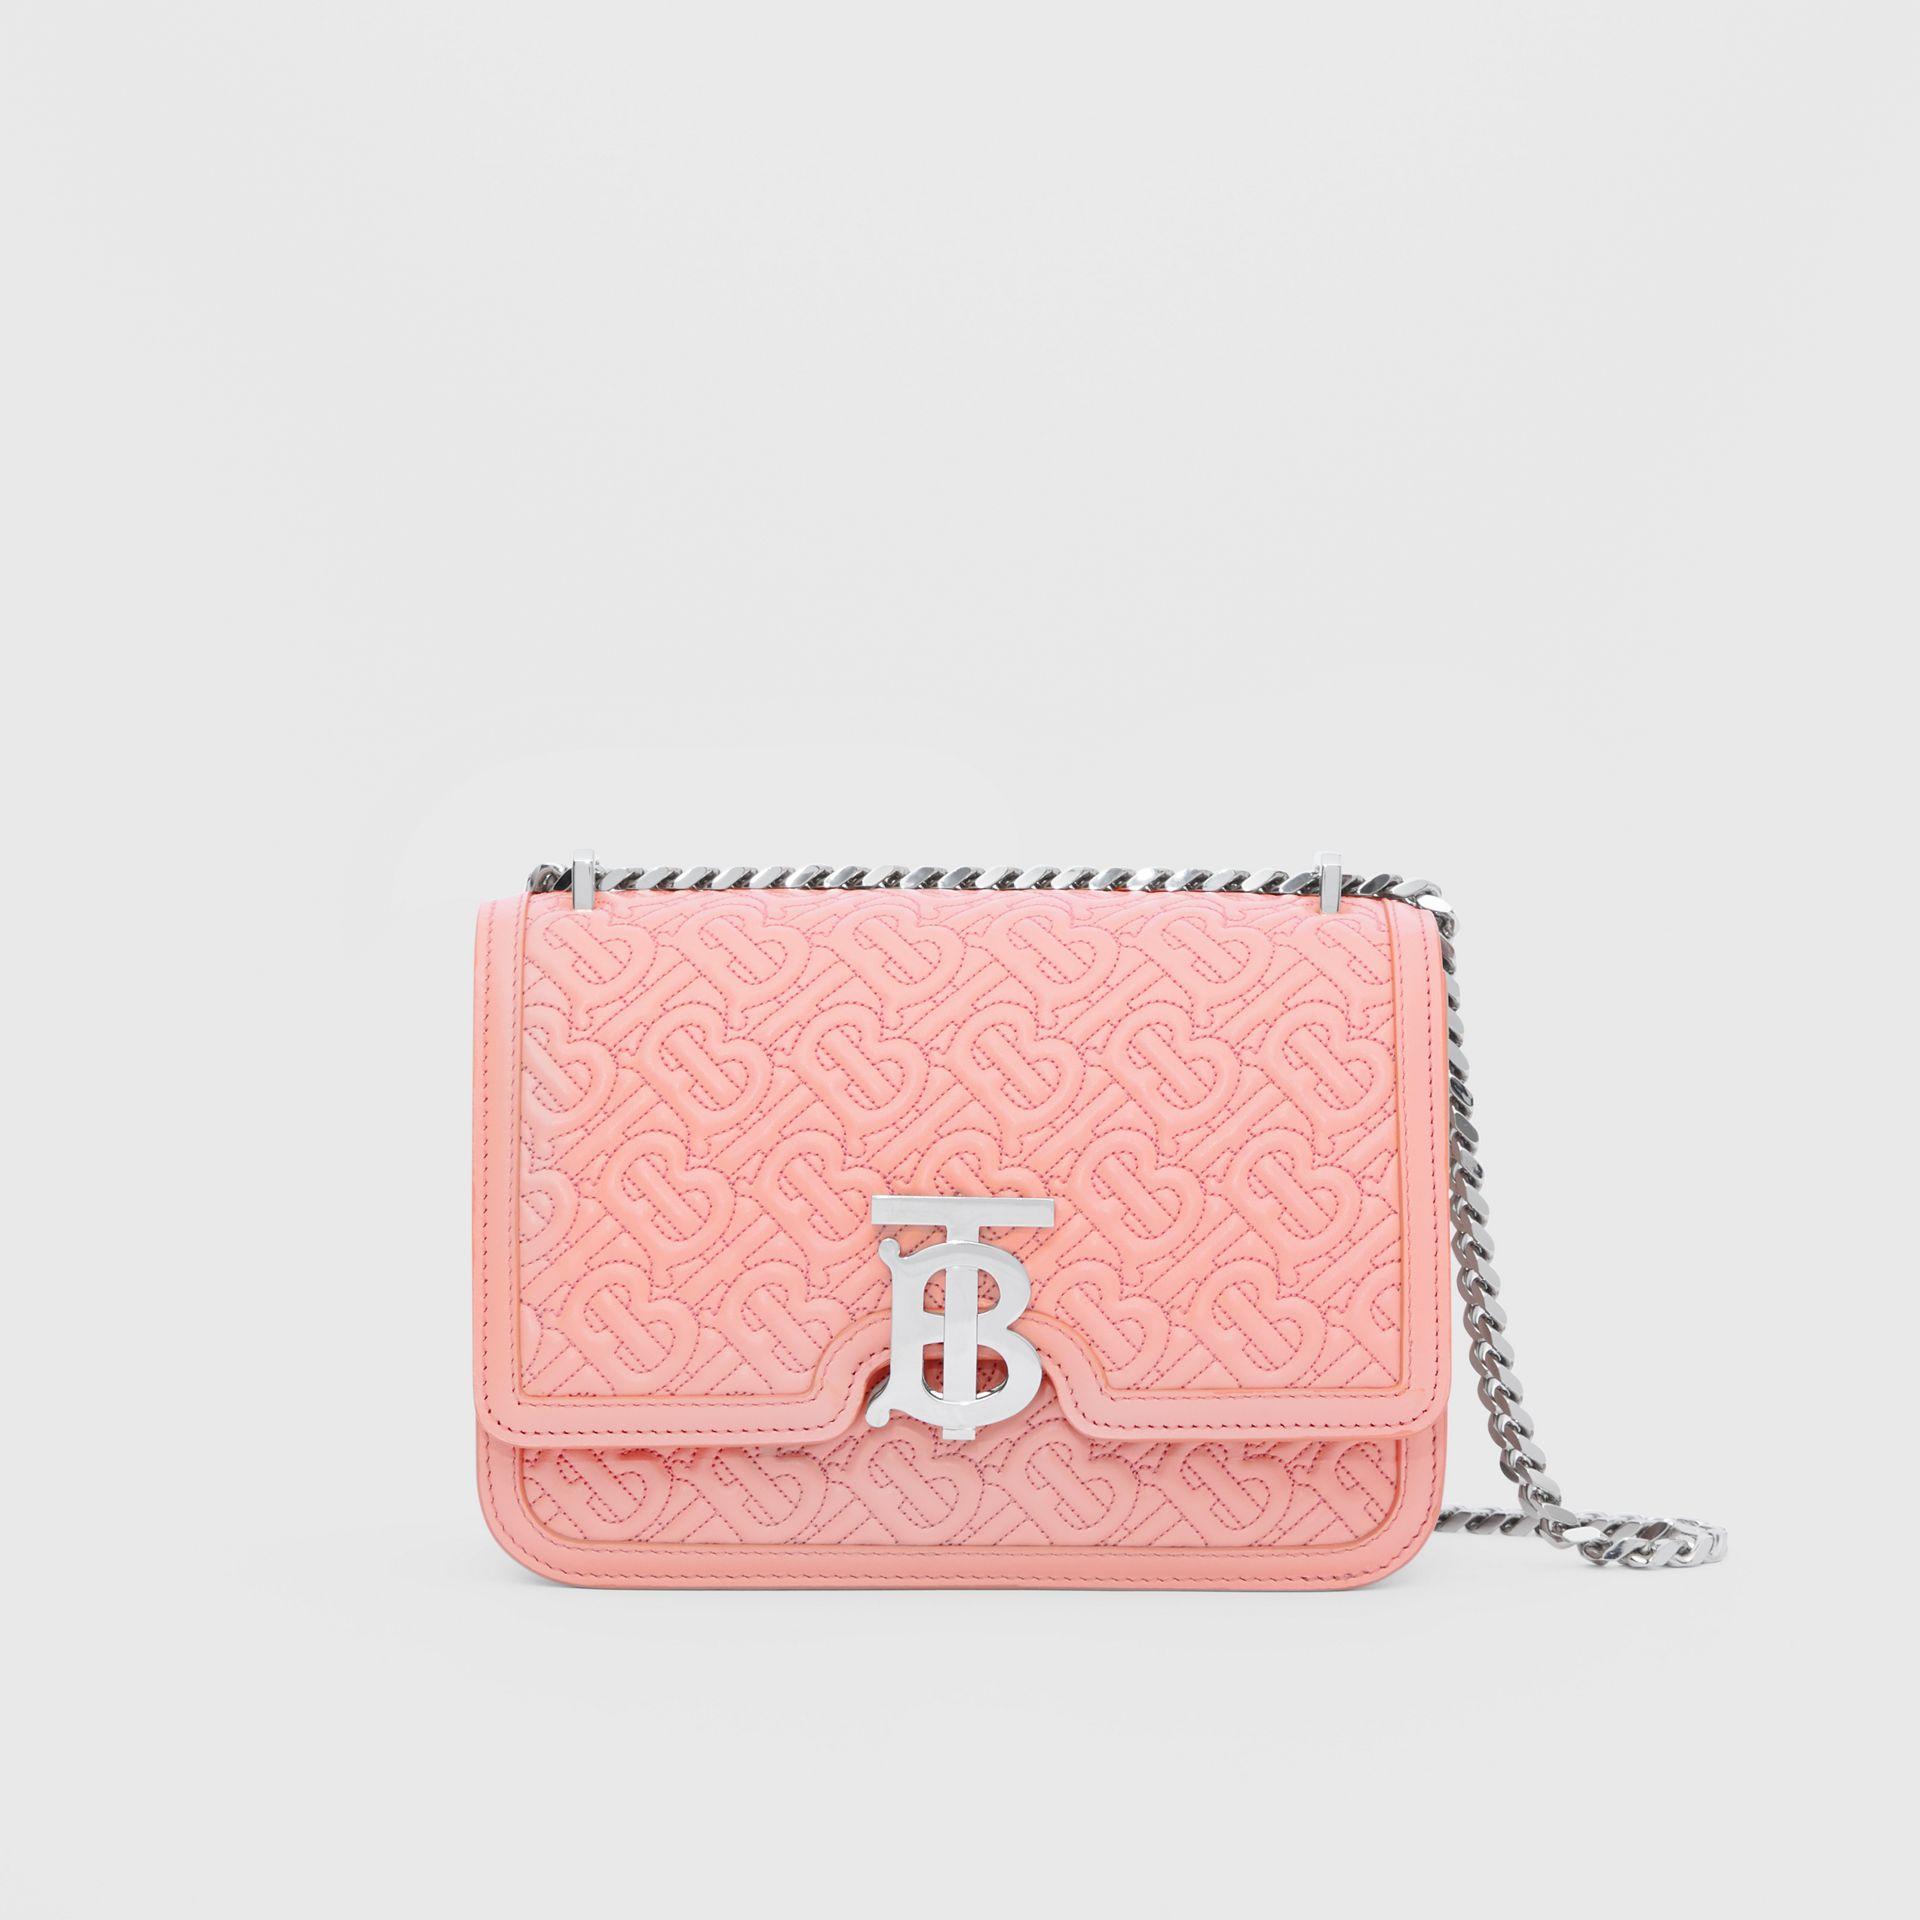 Small Quilted Monogram Lambskin TB Bag in Blush Pink - Women | Burberry Hong Kong S.A.R. - gallery image 0